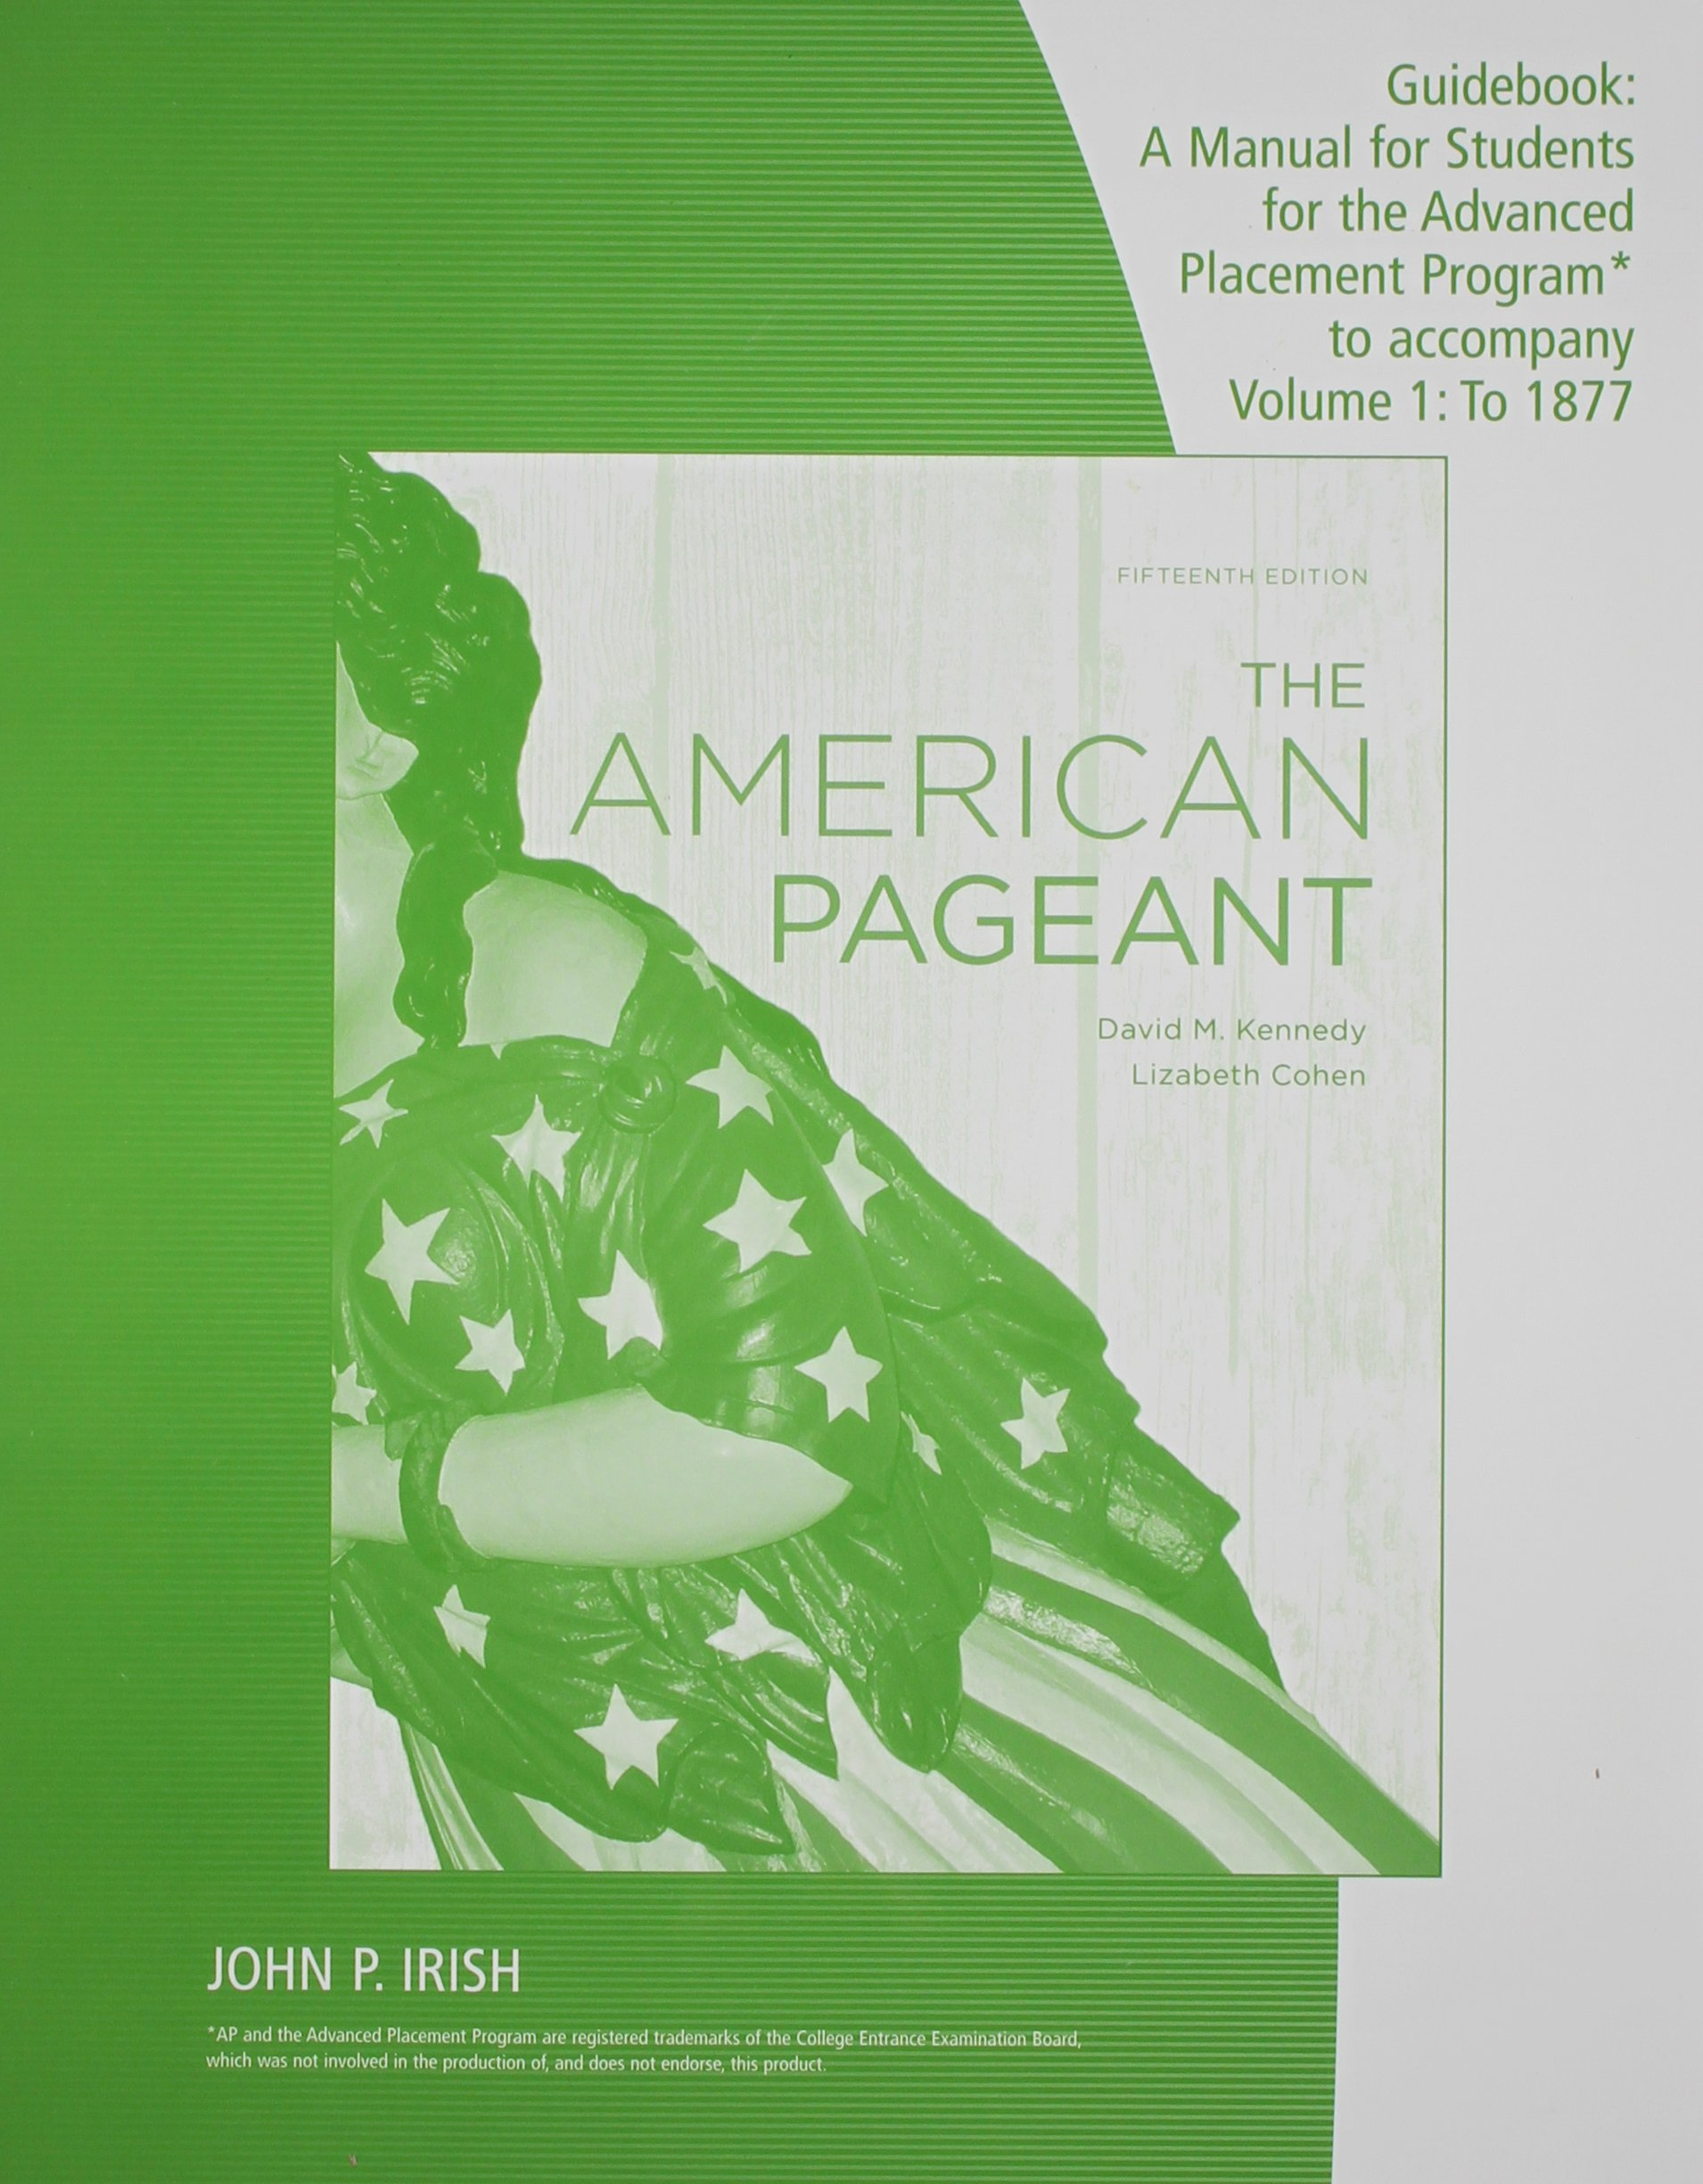 Guidebook: A Manual for Students for the Advanced Placement Program to  Accompany the American Pageant, 15th Edition: Kennedy: 9780840029065:  Amazon.com: ...